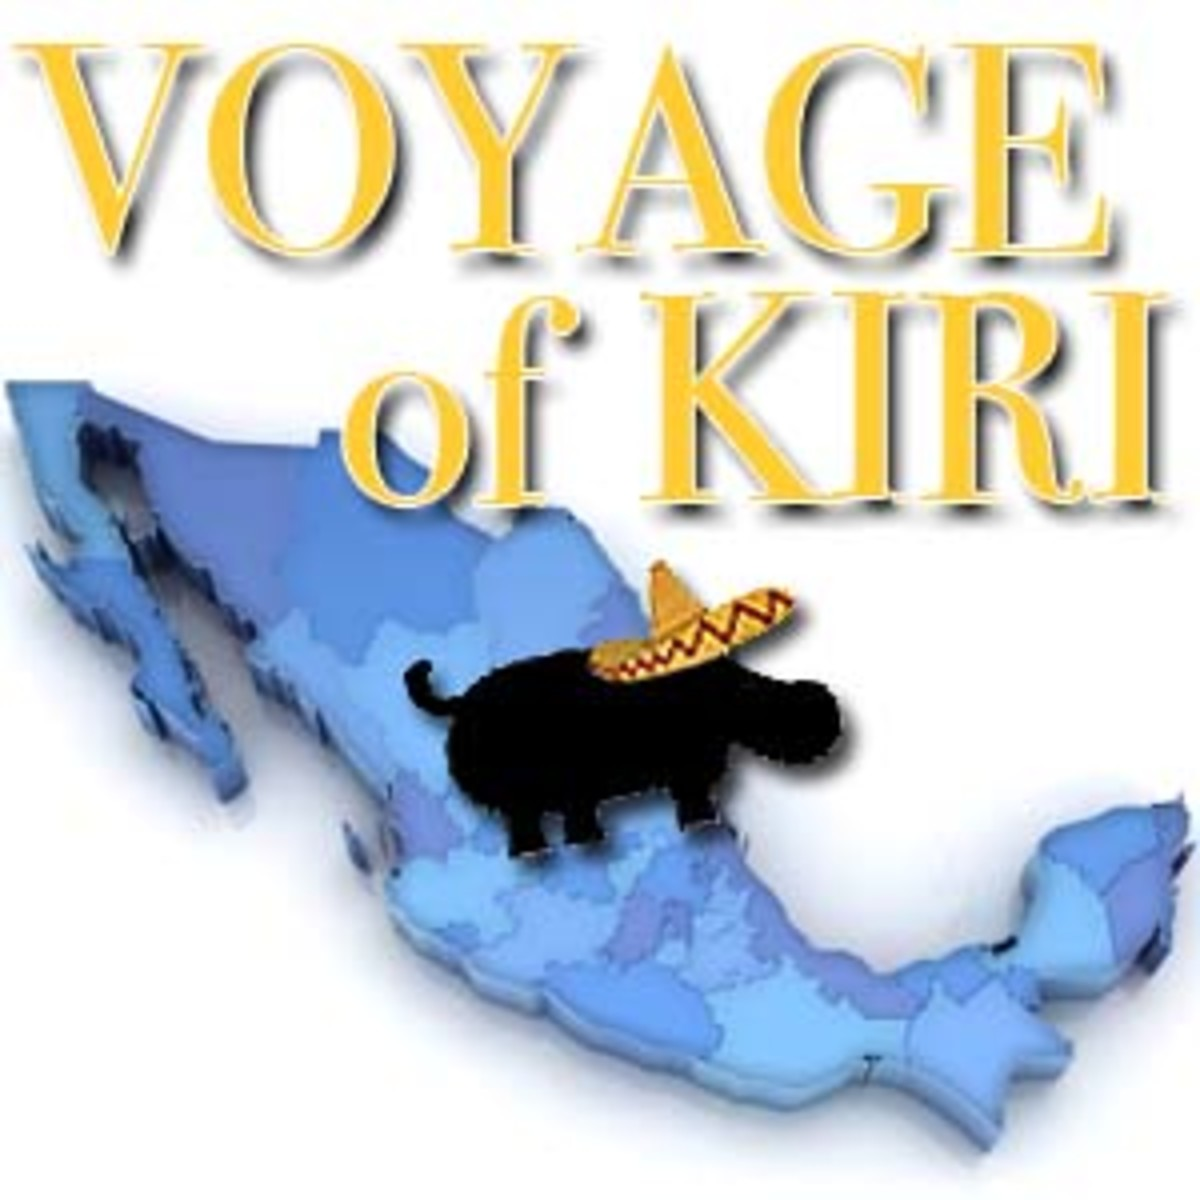 Click here for more posts from the Voyage of Kiri.